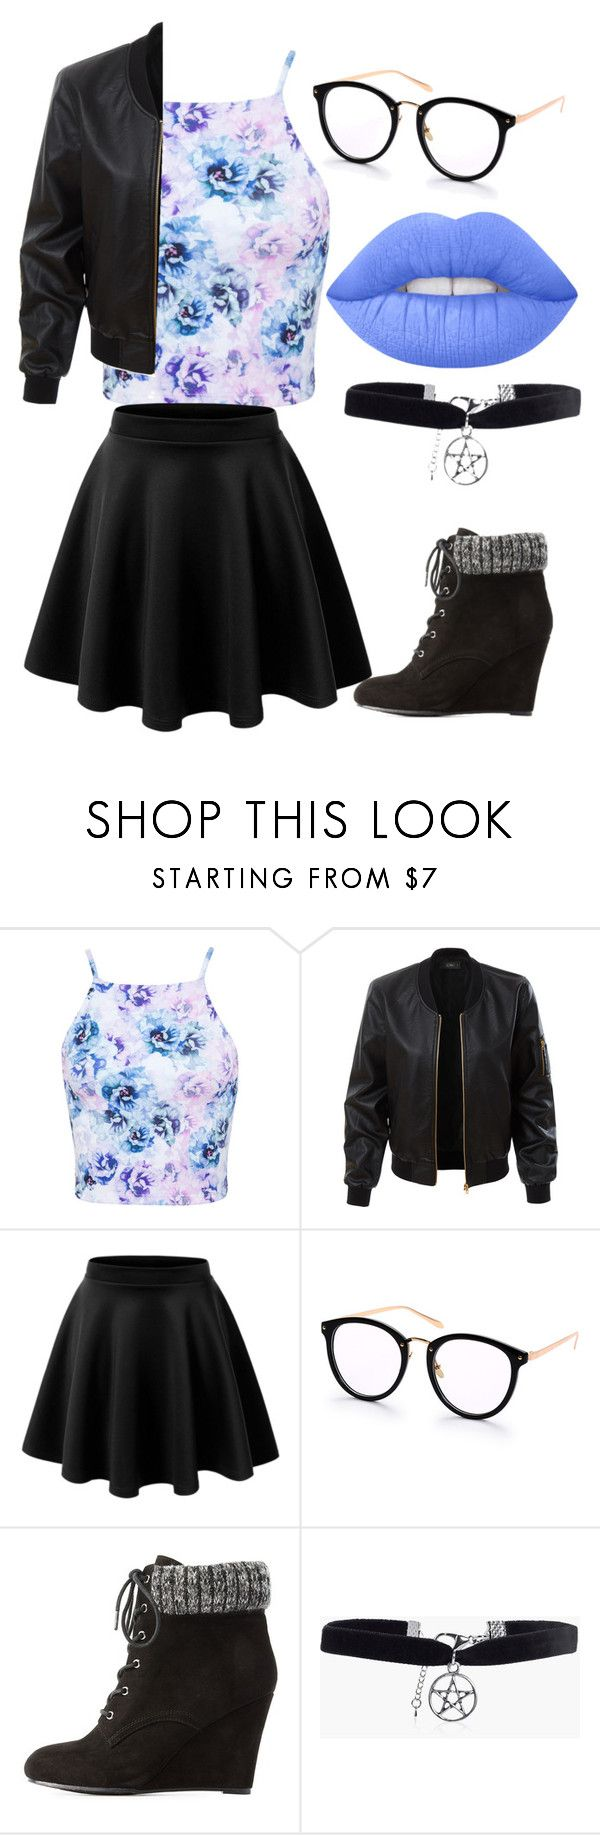 """""""outfit"""" by hjeanb on Polyvore featuring Miss Selfridge, LE3NO, Charlotte Russe, Boohoo and Lime Crime"""